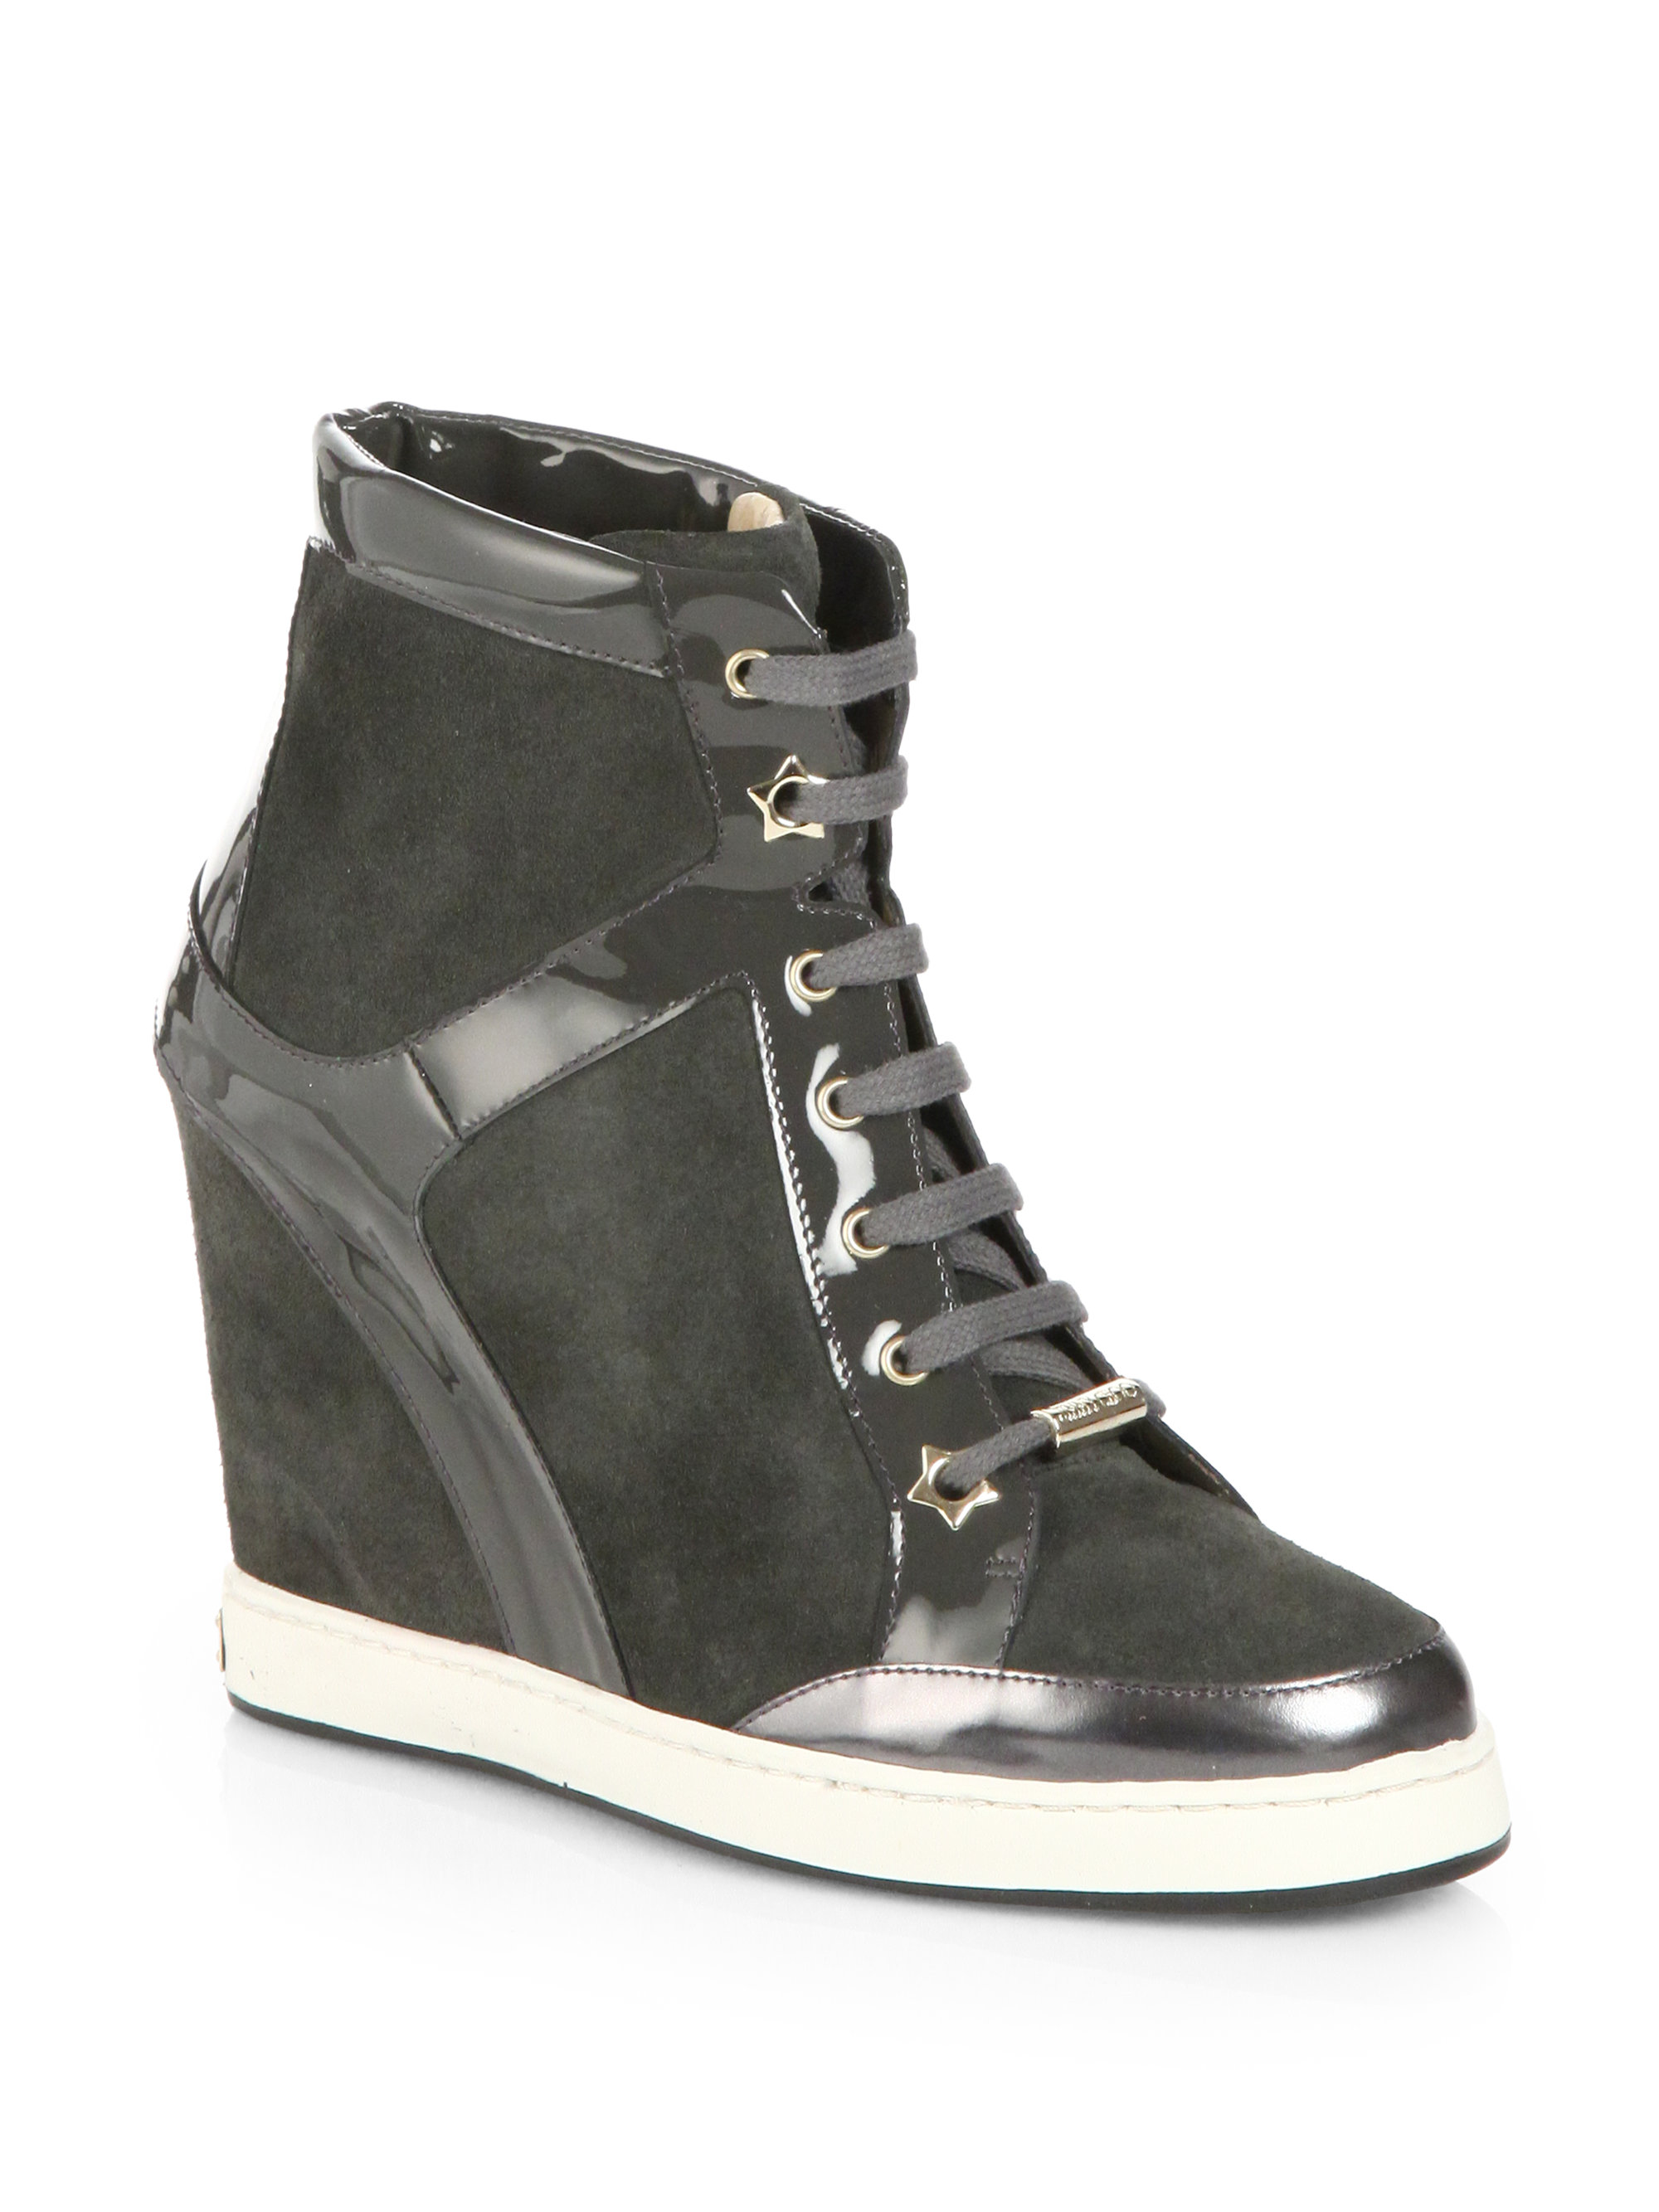 jimmy choo panama suede lace up wedge sneakers in gray lyst. Black Bedroom Furniture Sets. Home Design Ideas